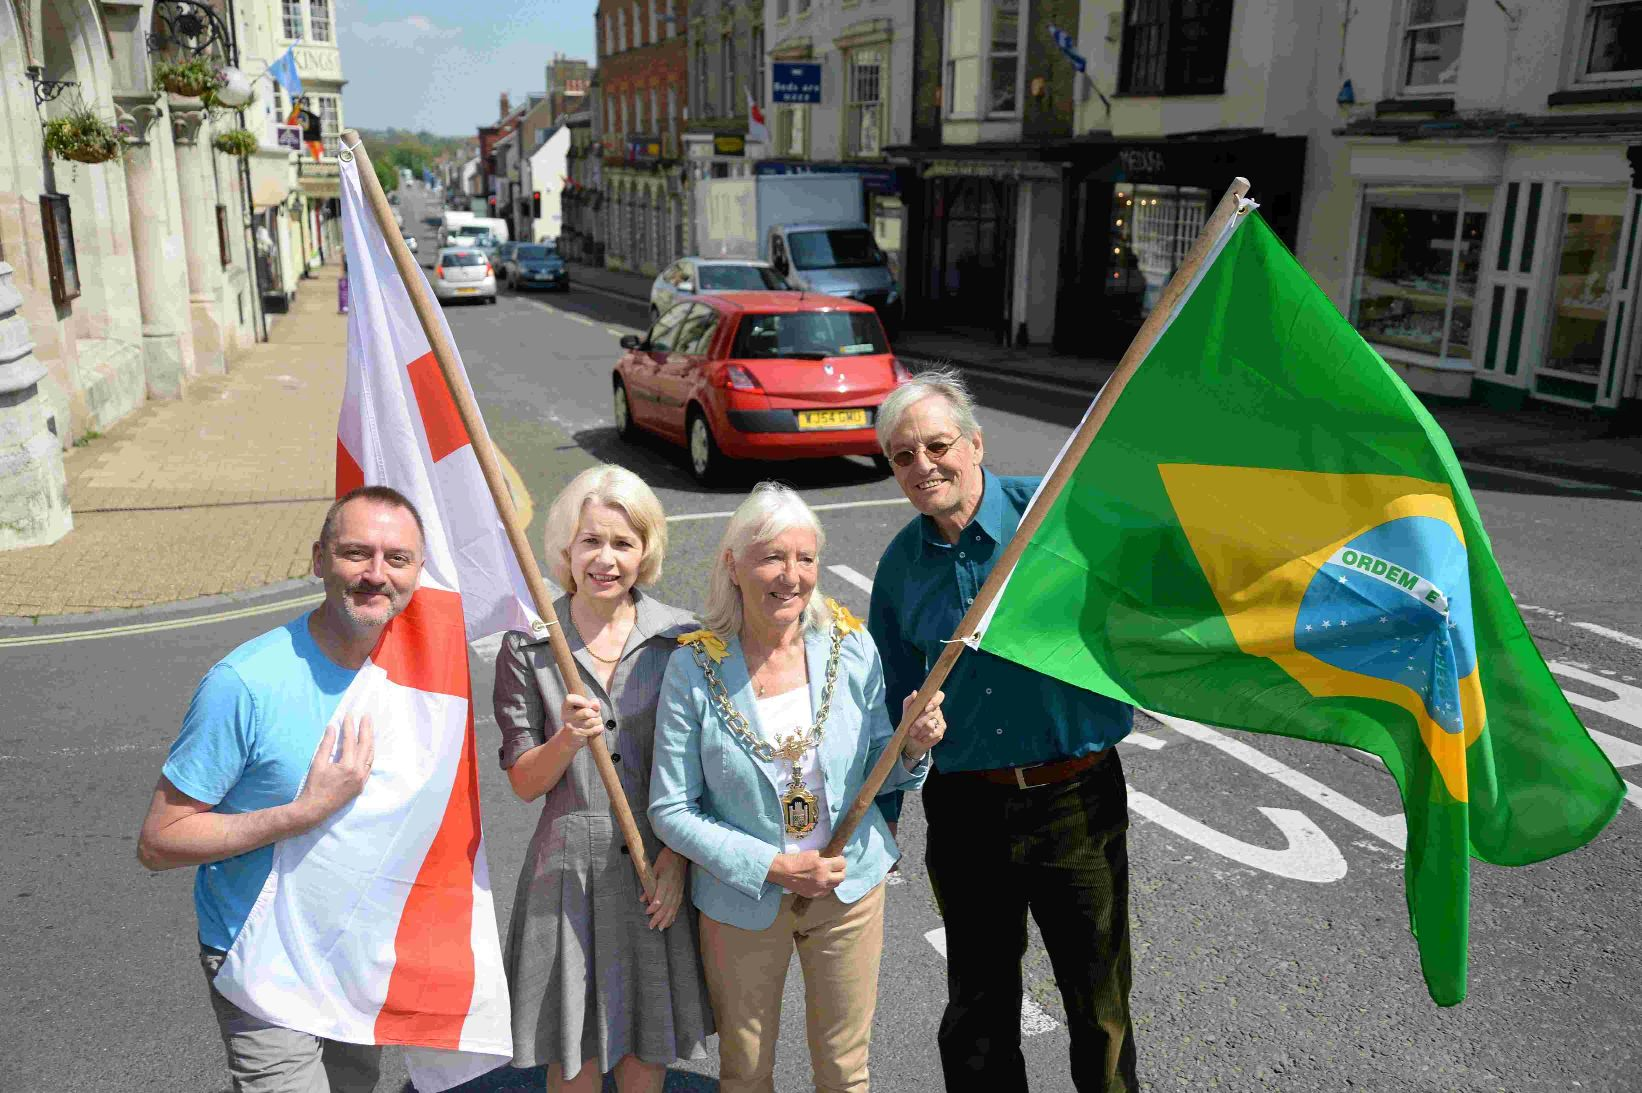 IN PLACE: Dorchester flags go up, from left David Taylor, Sian Merriott, Stella Jones and Alistair Chisholm